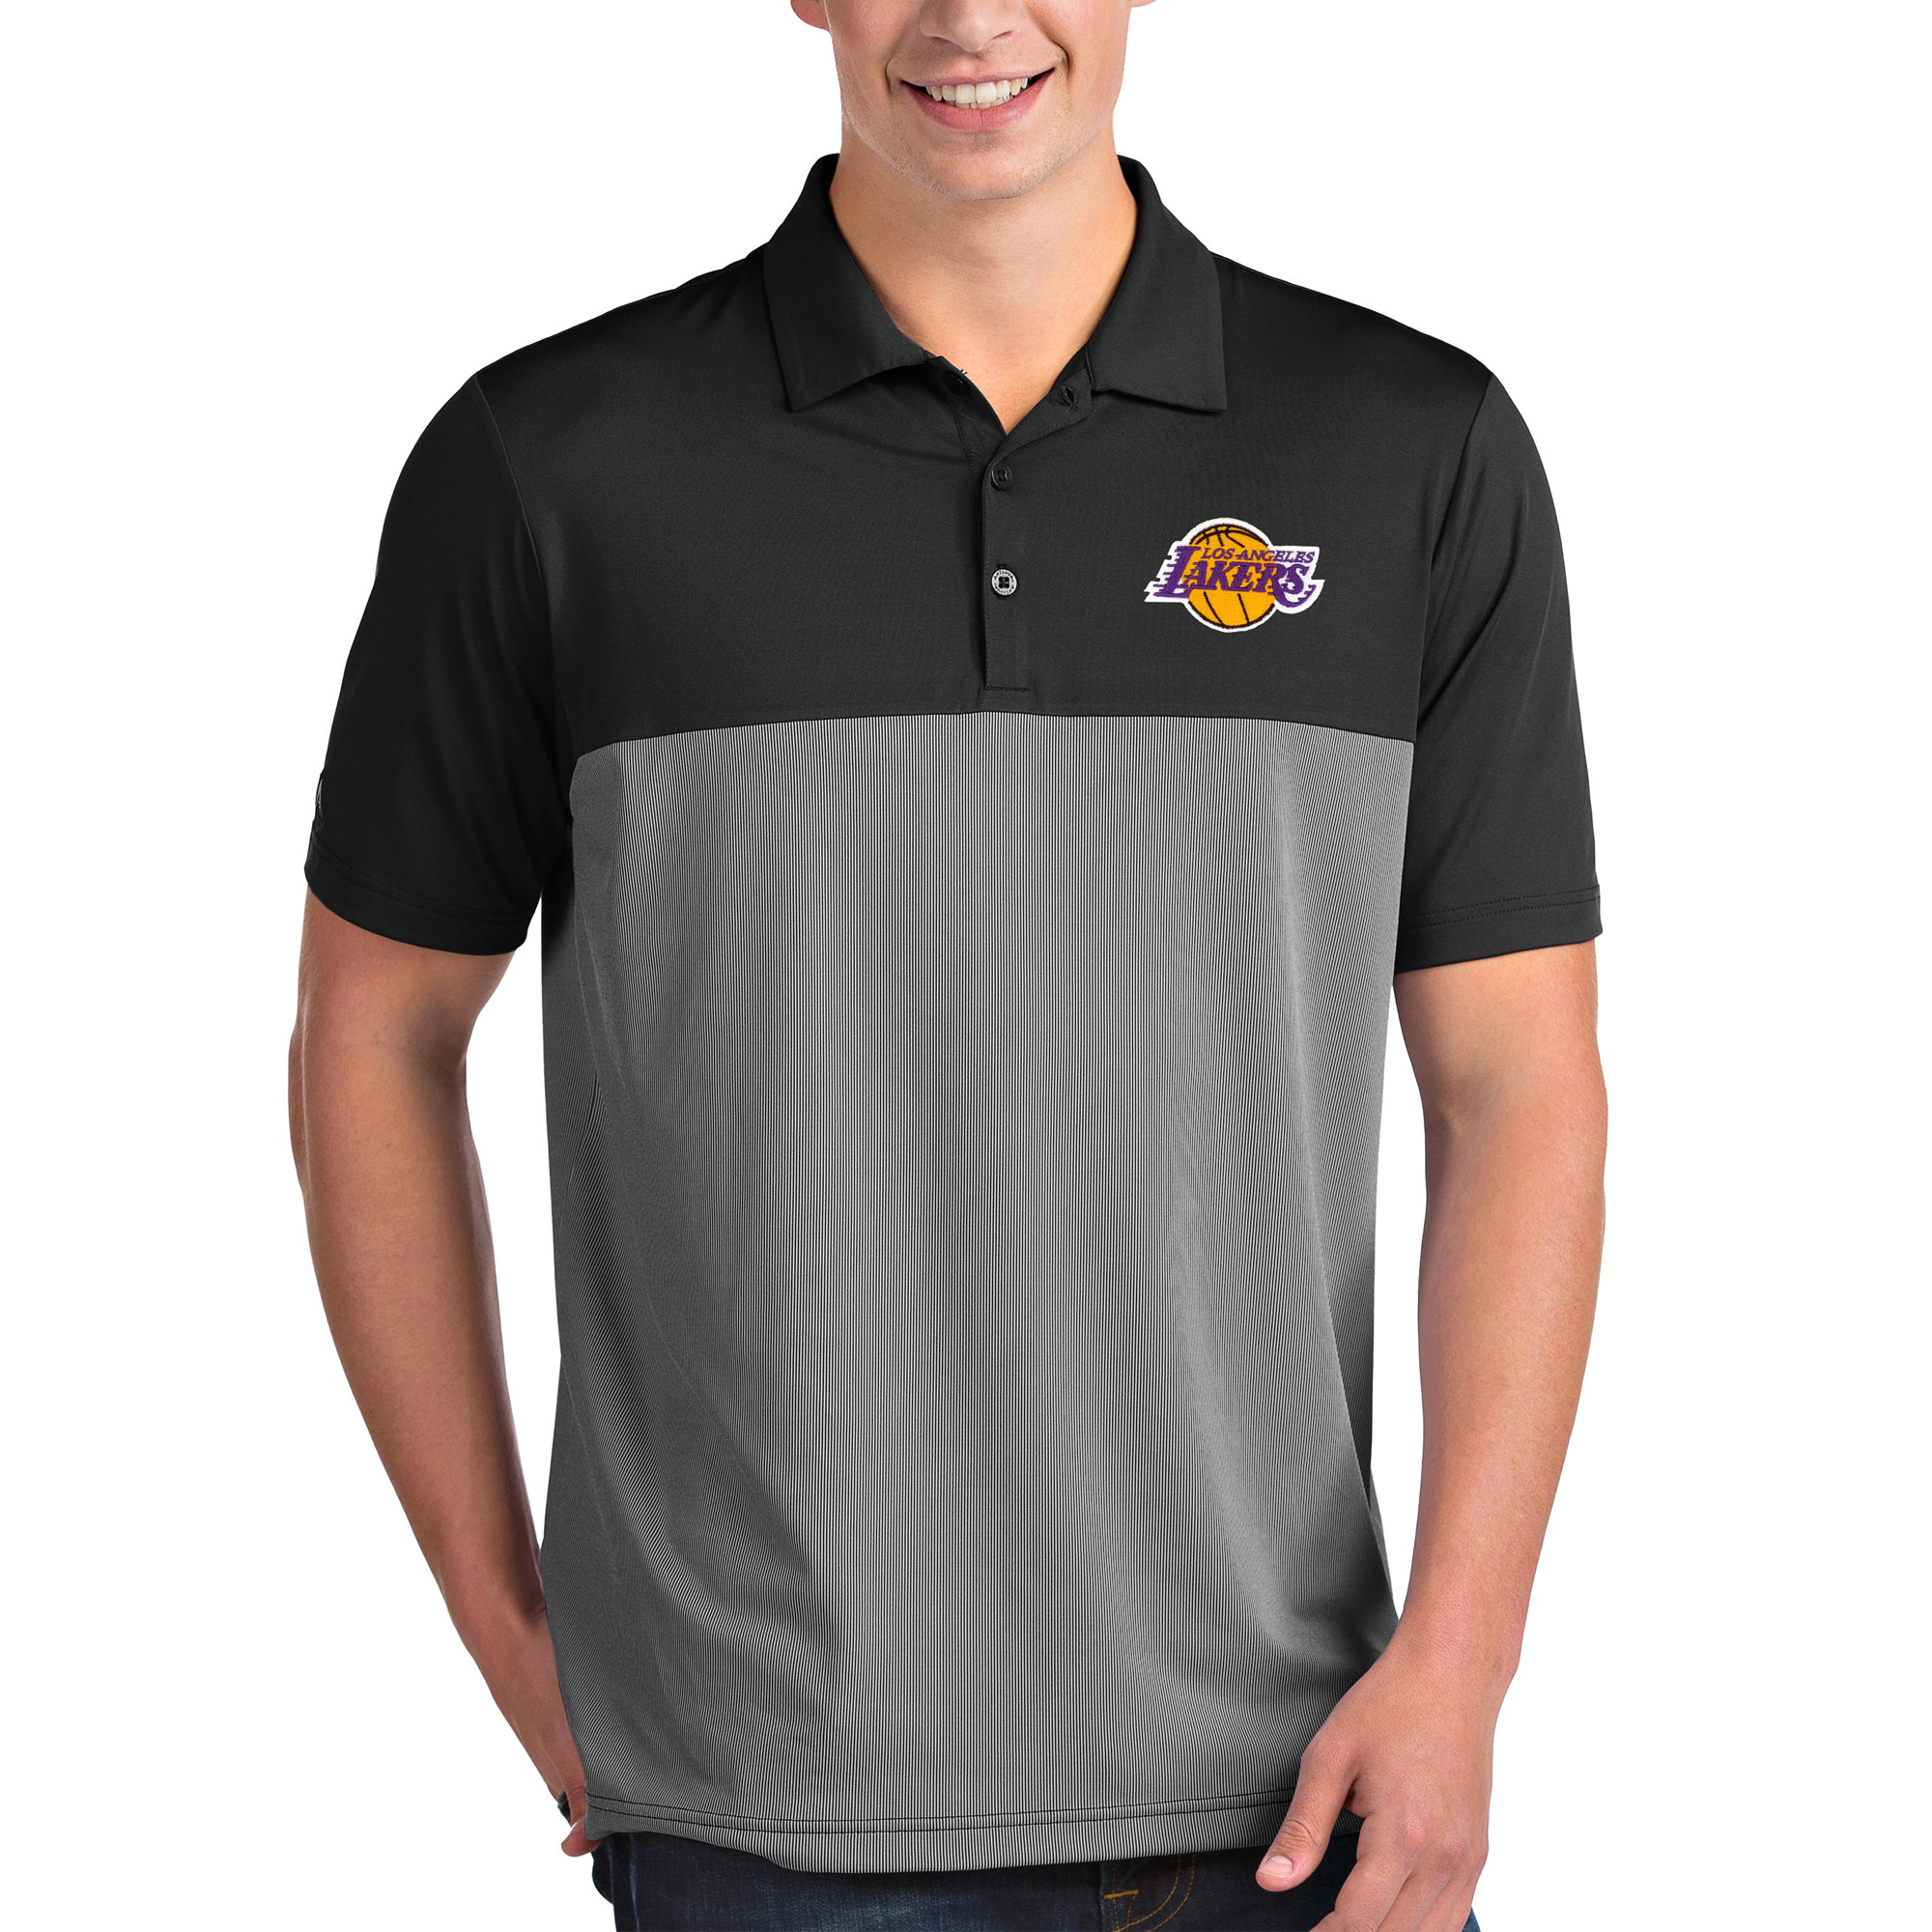 Los Angeles Lakers Antigua Venture Polo - Black/White